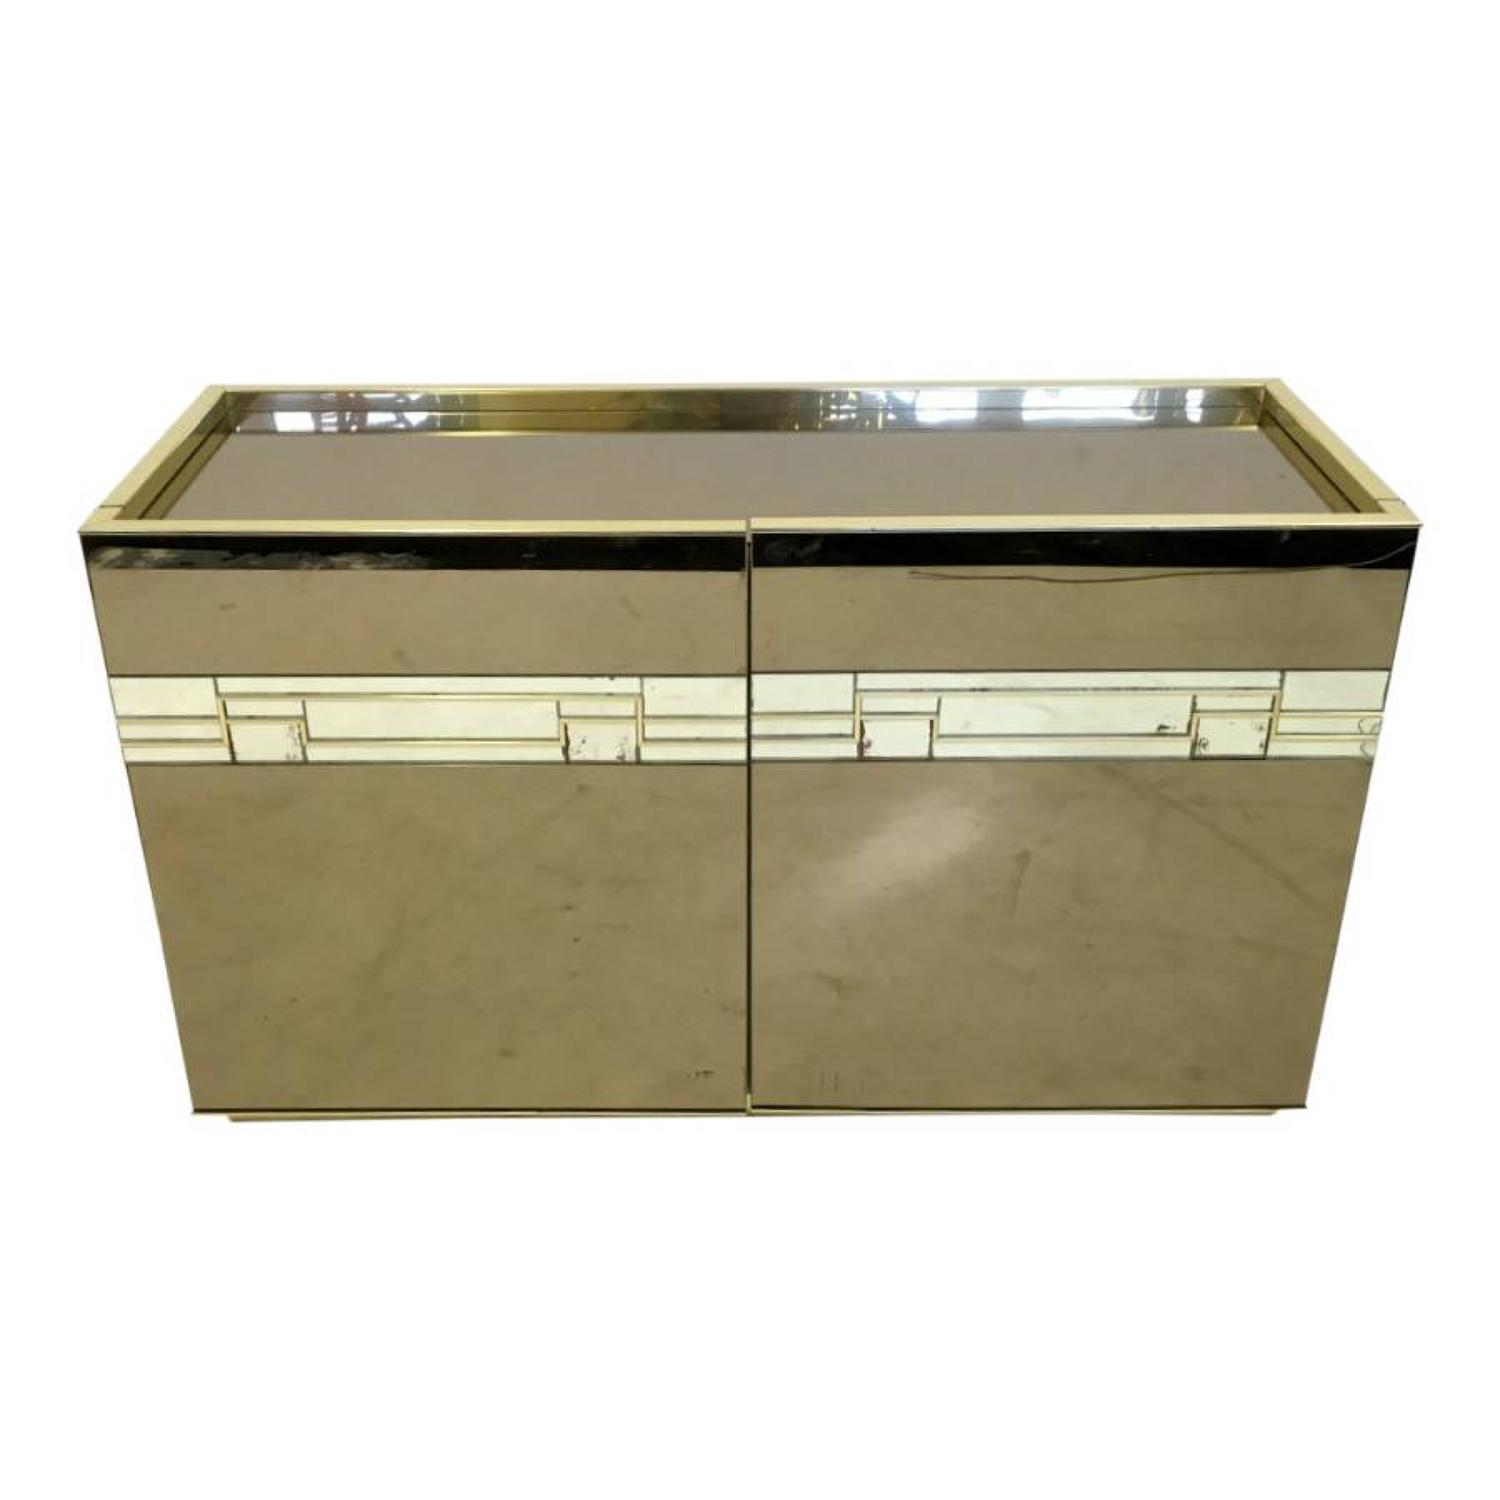 1970s Italian mirrored bar cabinet with brass trim